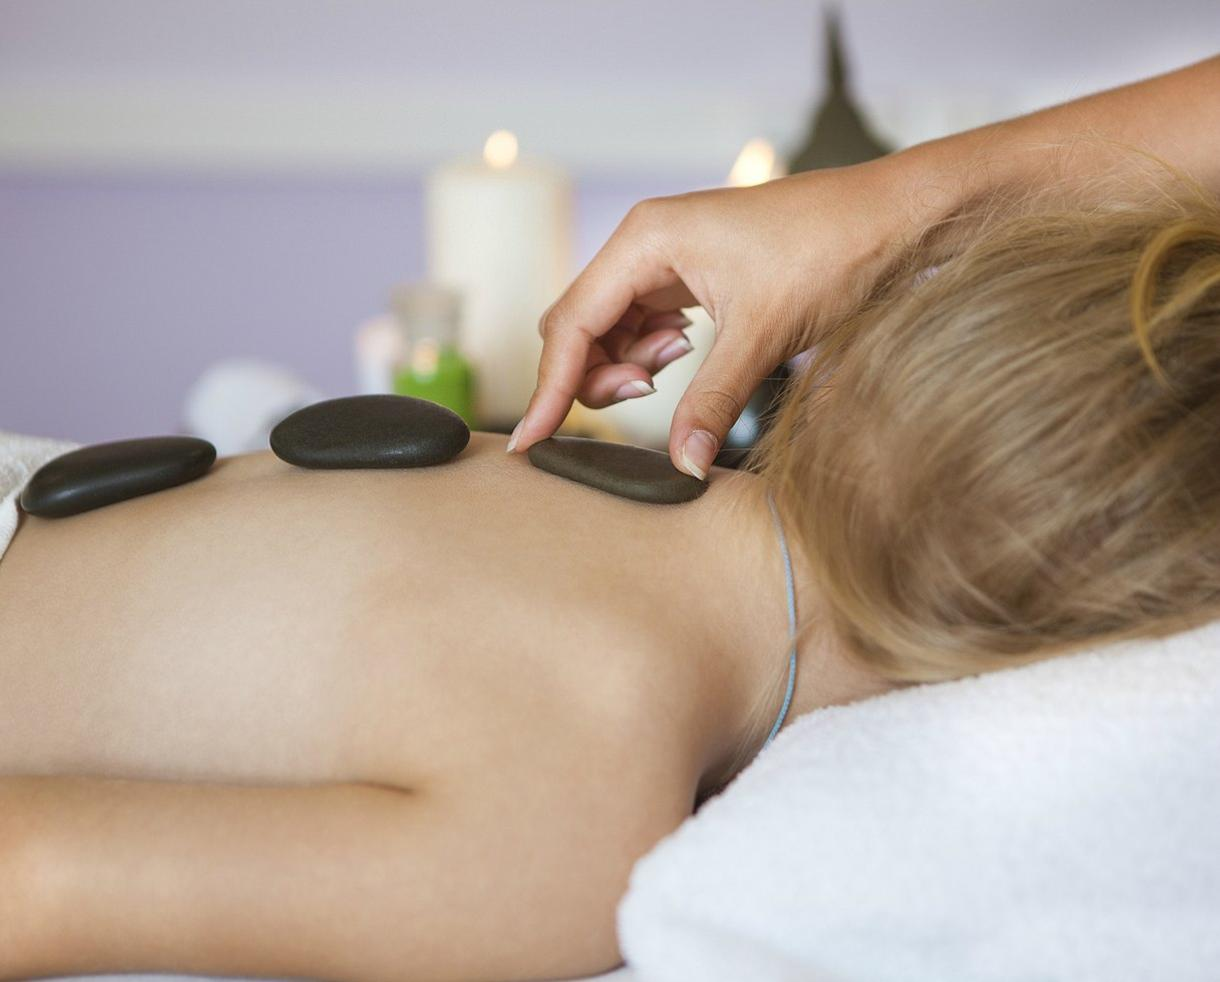 $99 for Renew Body & Mind Massage & Facial at Skin Alchemy Day Spa - Washington D.C. Capital Hilton (44% Off)